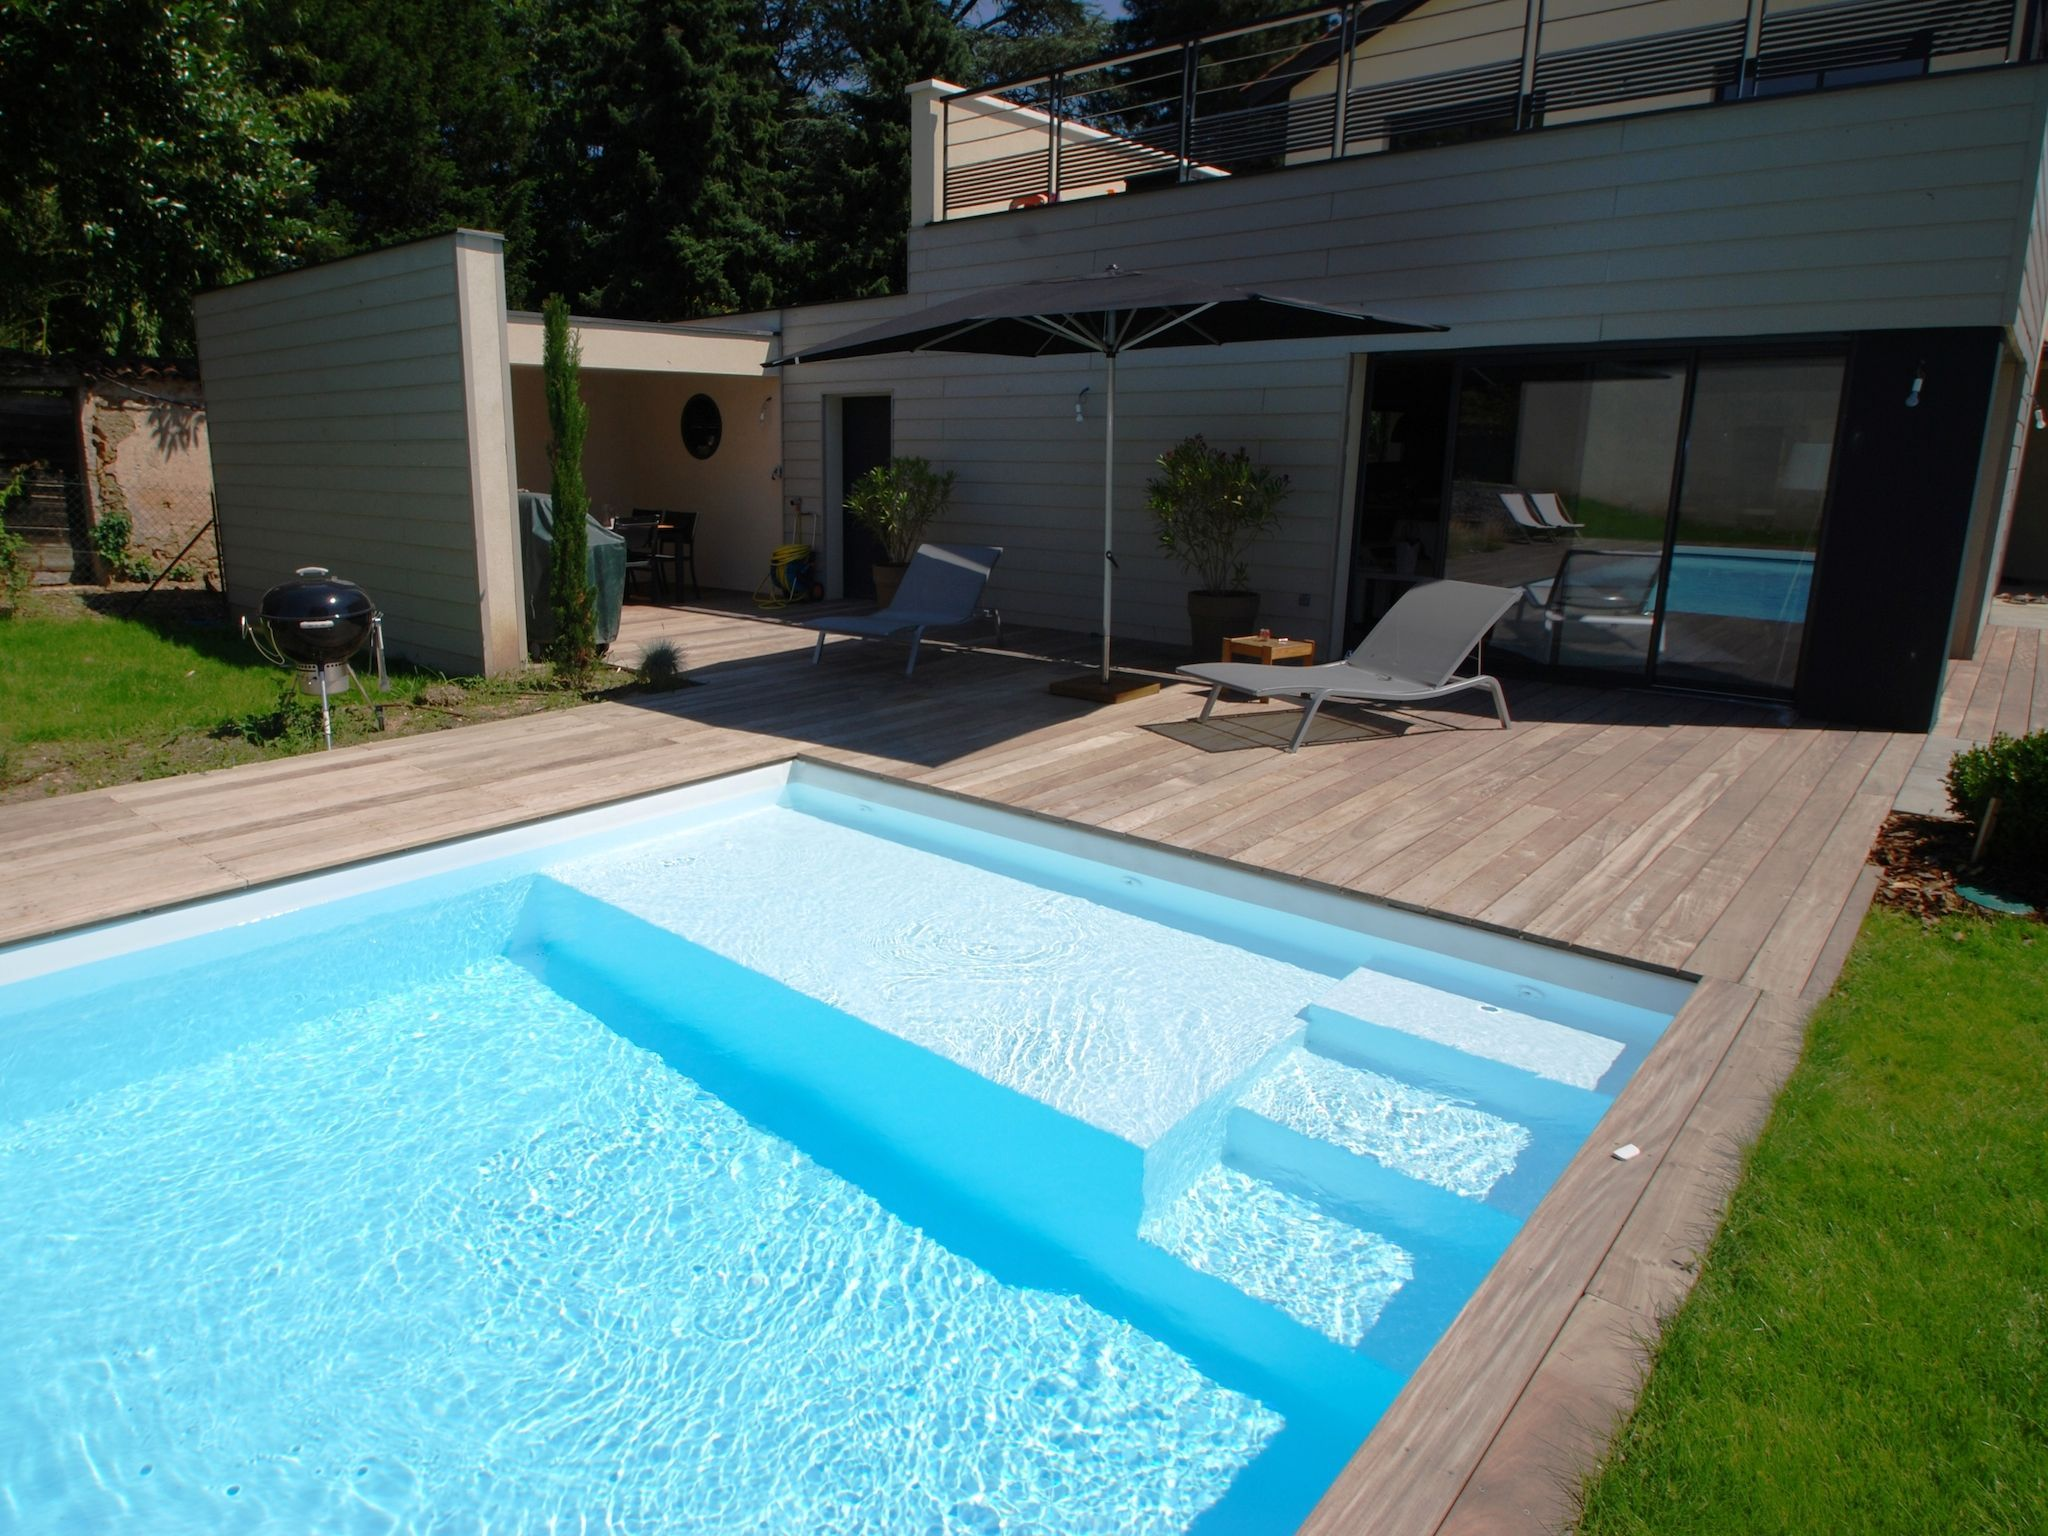 L 39 escalier sur mesure par l 39 esprit piscine escalier sur for Construction pool house piscine